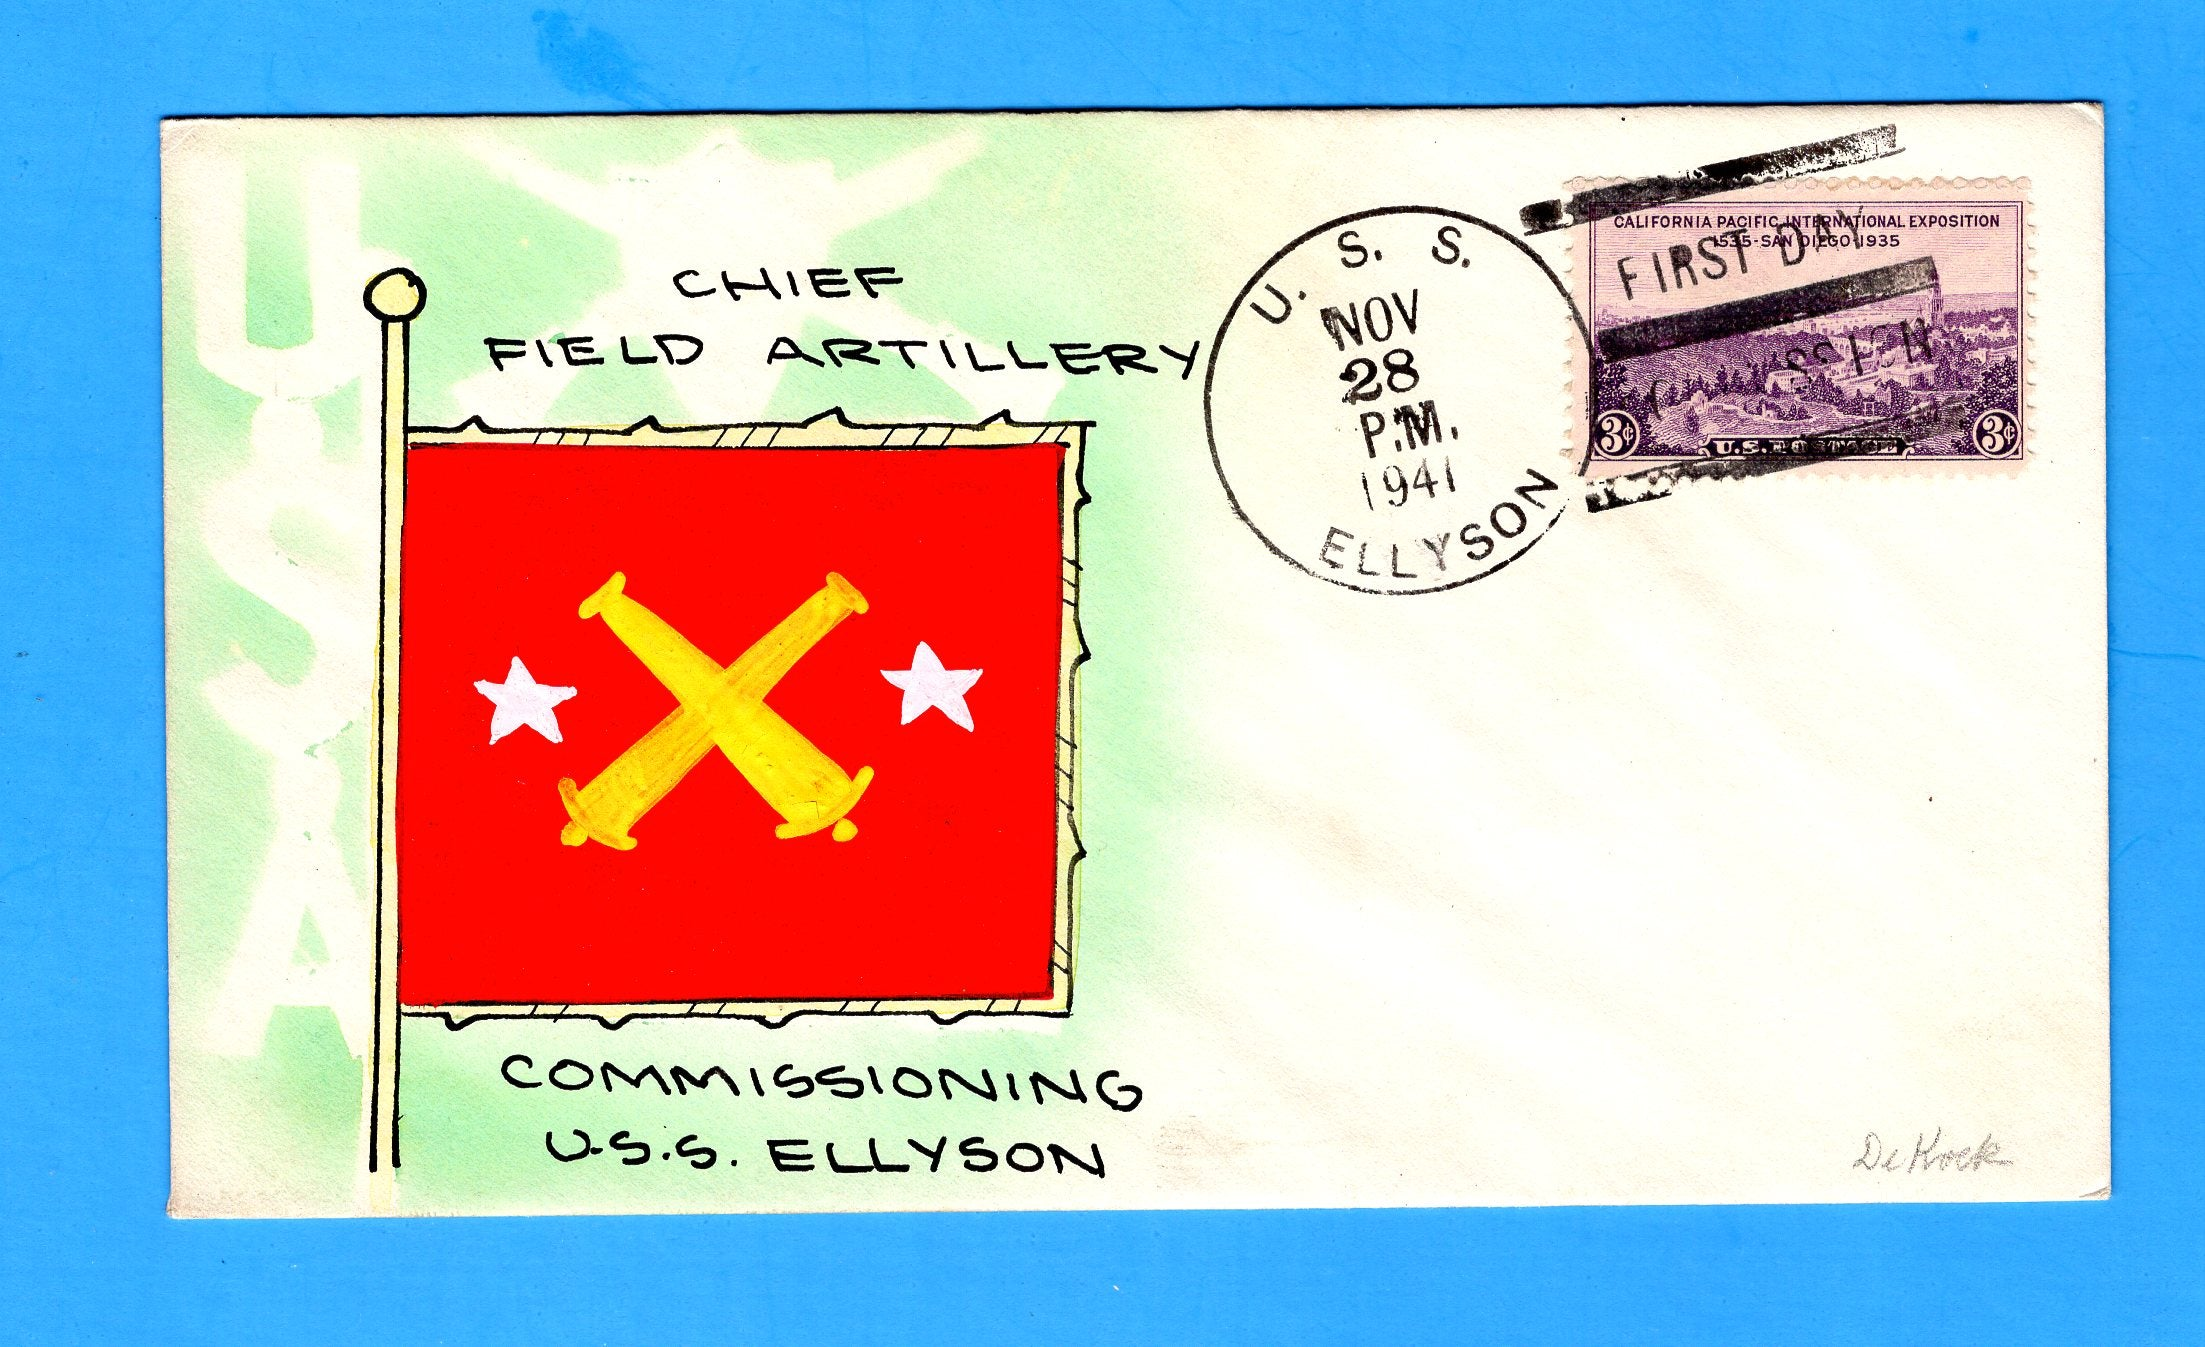 USS Ellyson DD-454 Commissioned November 28, 1941 - Mae Weigand Hand Painted Cachet